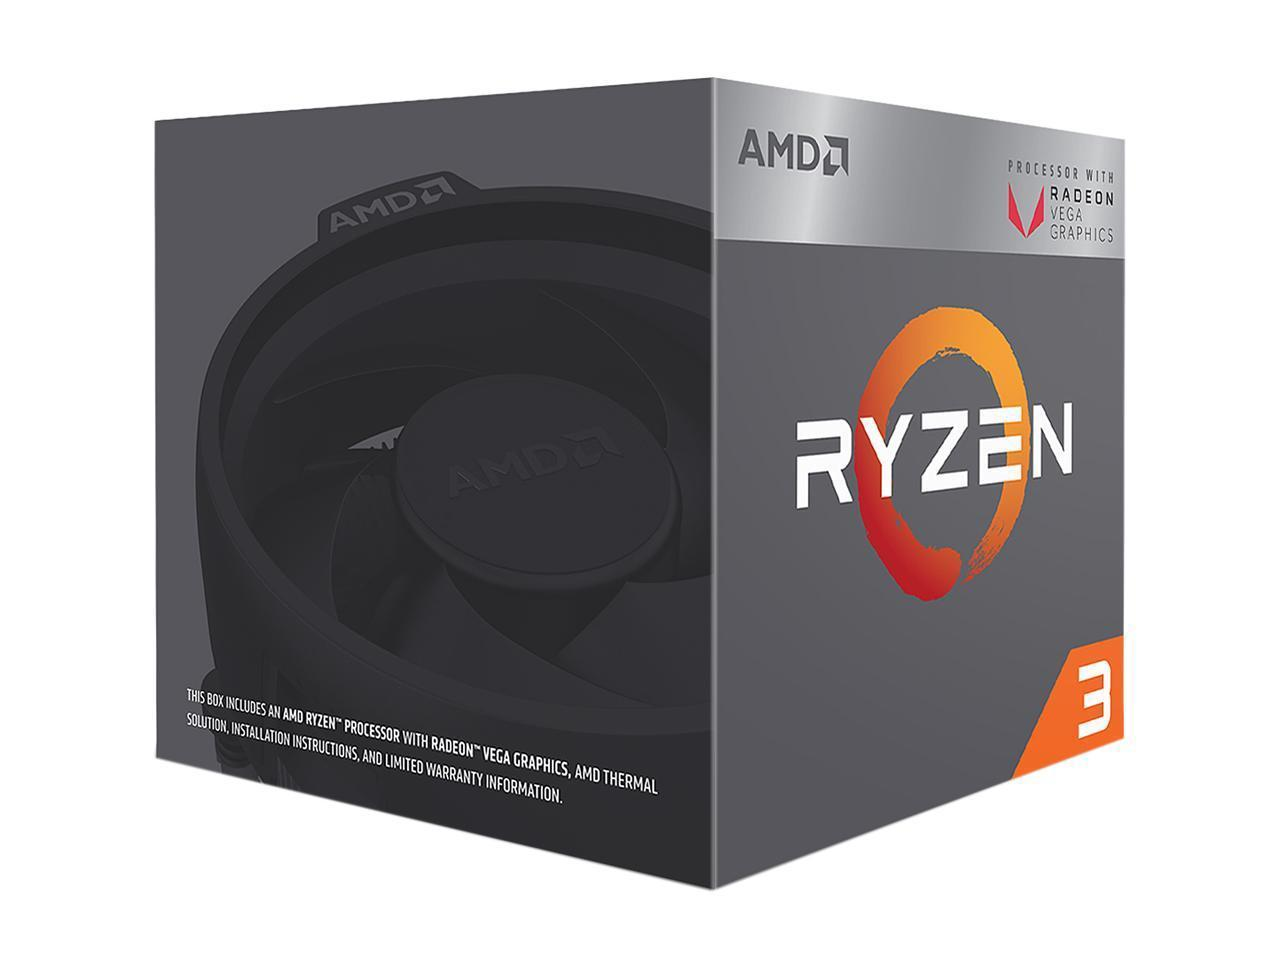 Процесор AMD RYZEN 3 2200G 4-Core 3.5 GHz (3.7 GHz Turbo) 6MB/65W/AM4/BOX-2